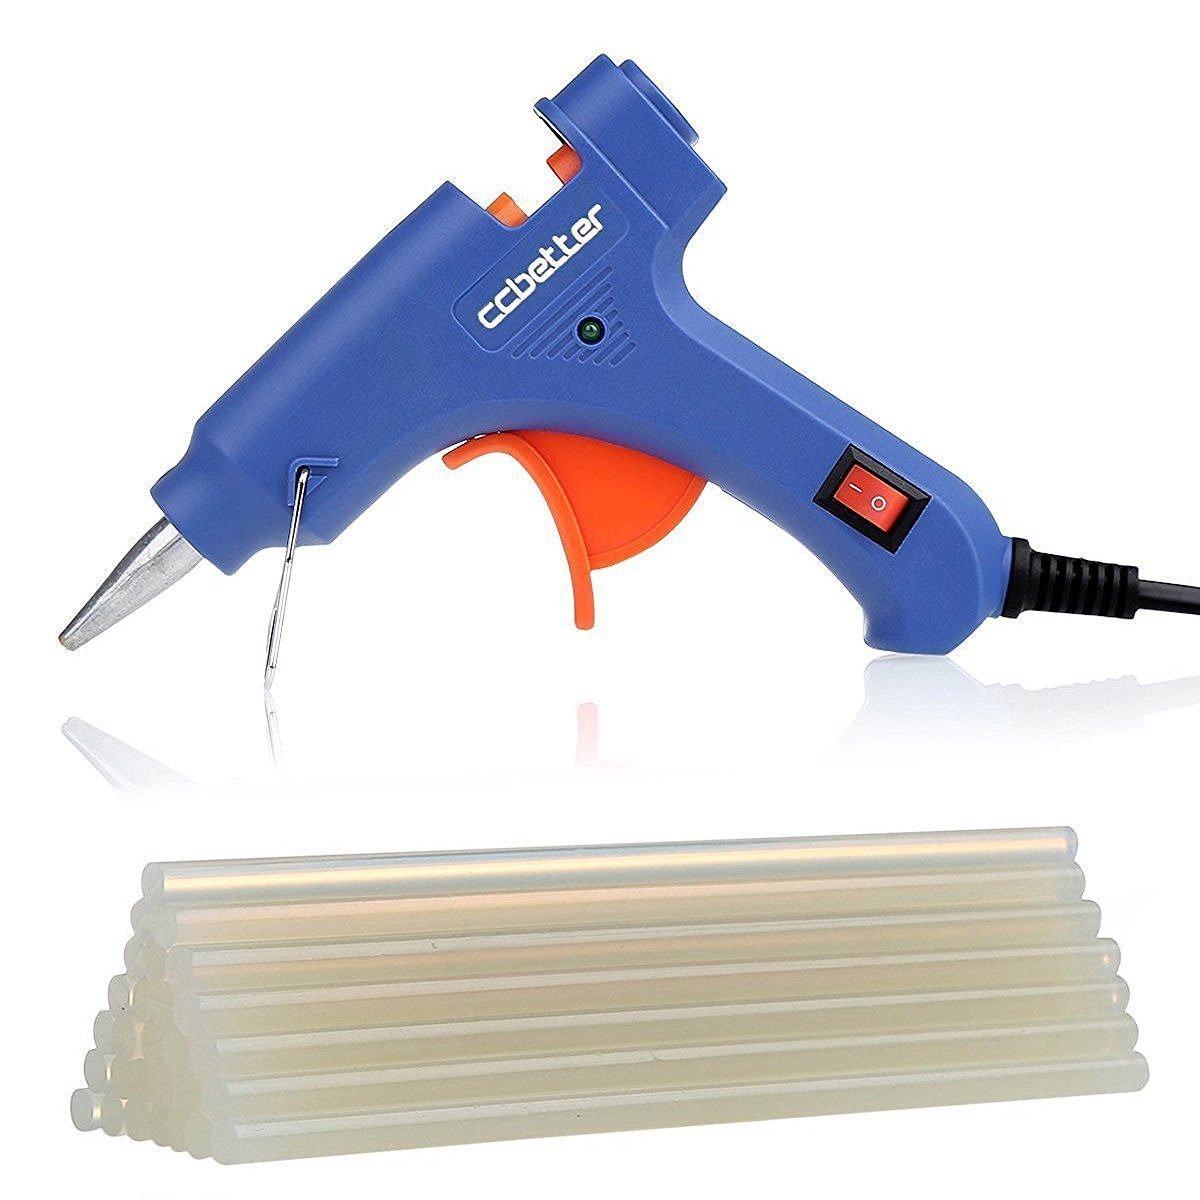 CCbetter Mini Hot Melt Glue Gun with 25pcs Glue Sticks High Temperature Melting Glue Gun Kit Flexible Trigger for DIY Small Craft Projects Sealing and Quick Repairs 20-watt, Blue